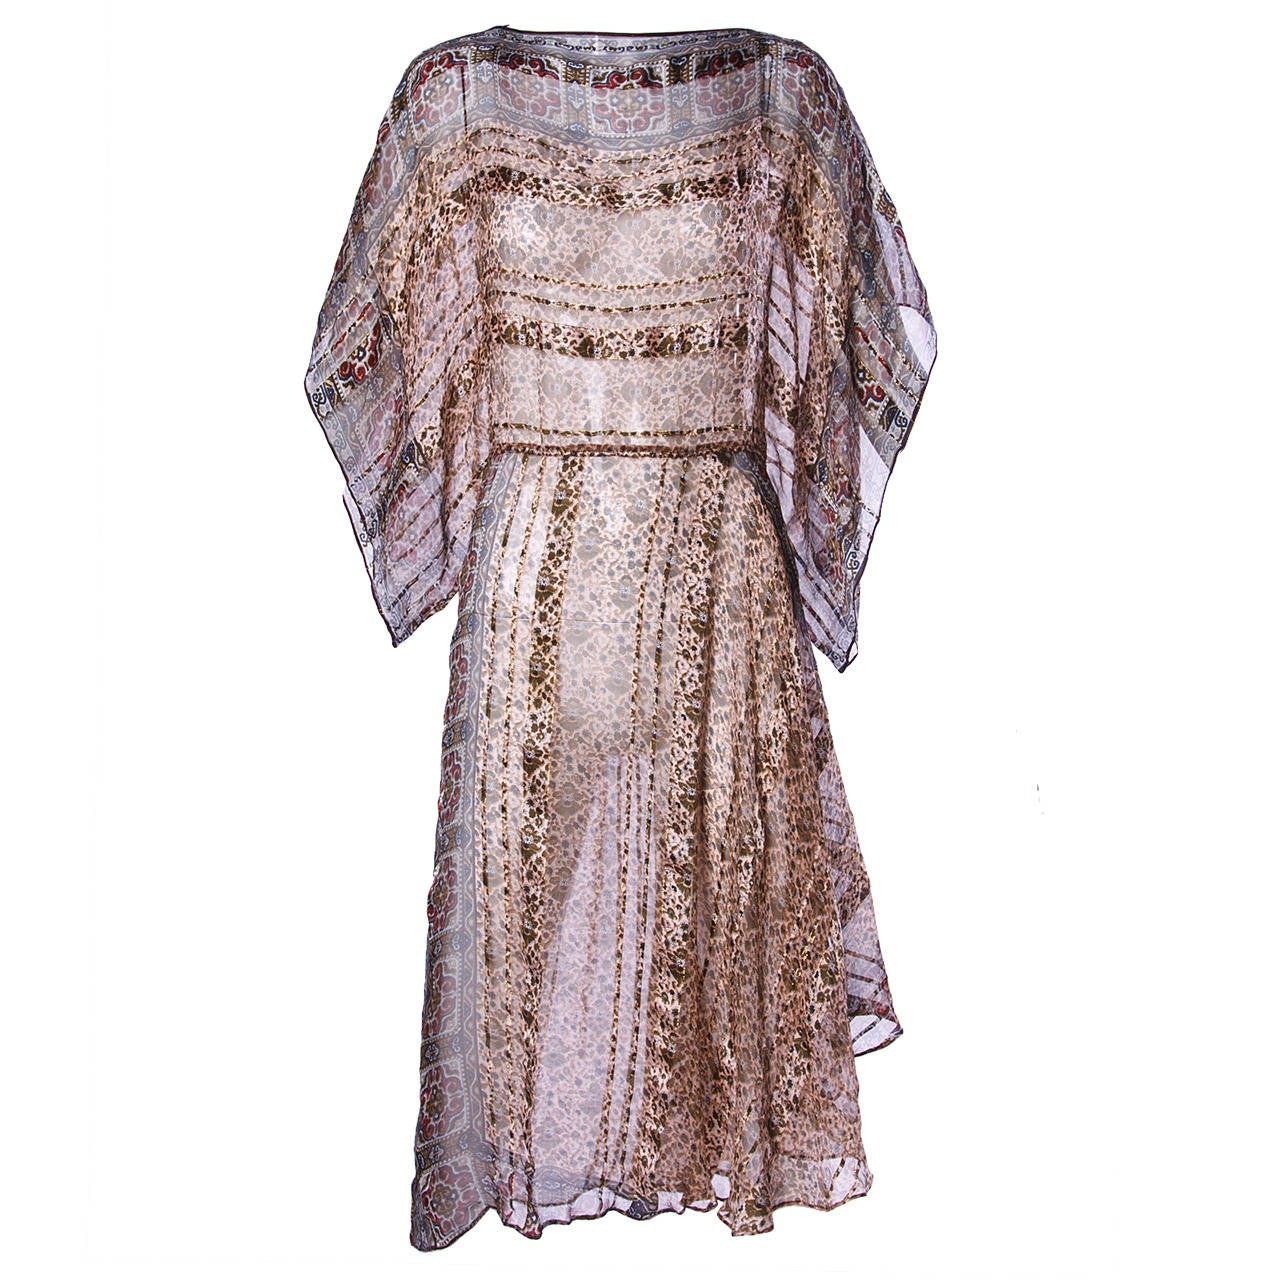 Vintage 1970s Sheer Silk Chiffon India Print Dress with Kimono Sleeves For Sale